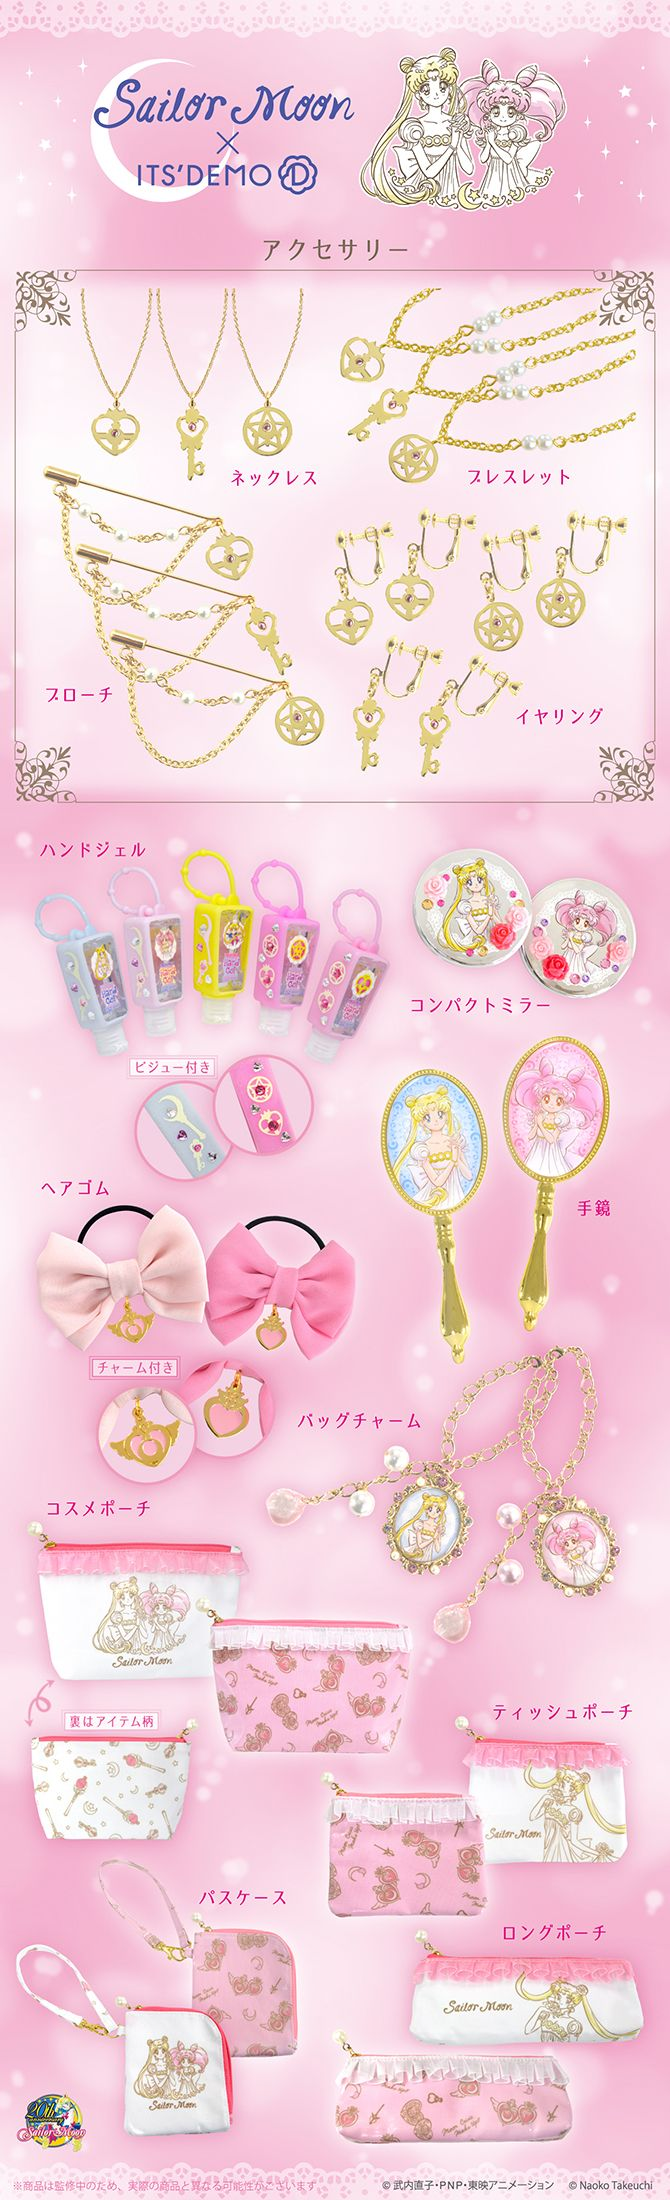 """sailor moon"" ""sailor moon merchandise"" ""sailor moon toys"" ""sailor moon collectibles"" ""princess serenity"" ""small lady"" ""its demo"" fashion japan shop anime 2015"